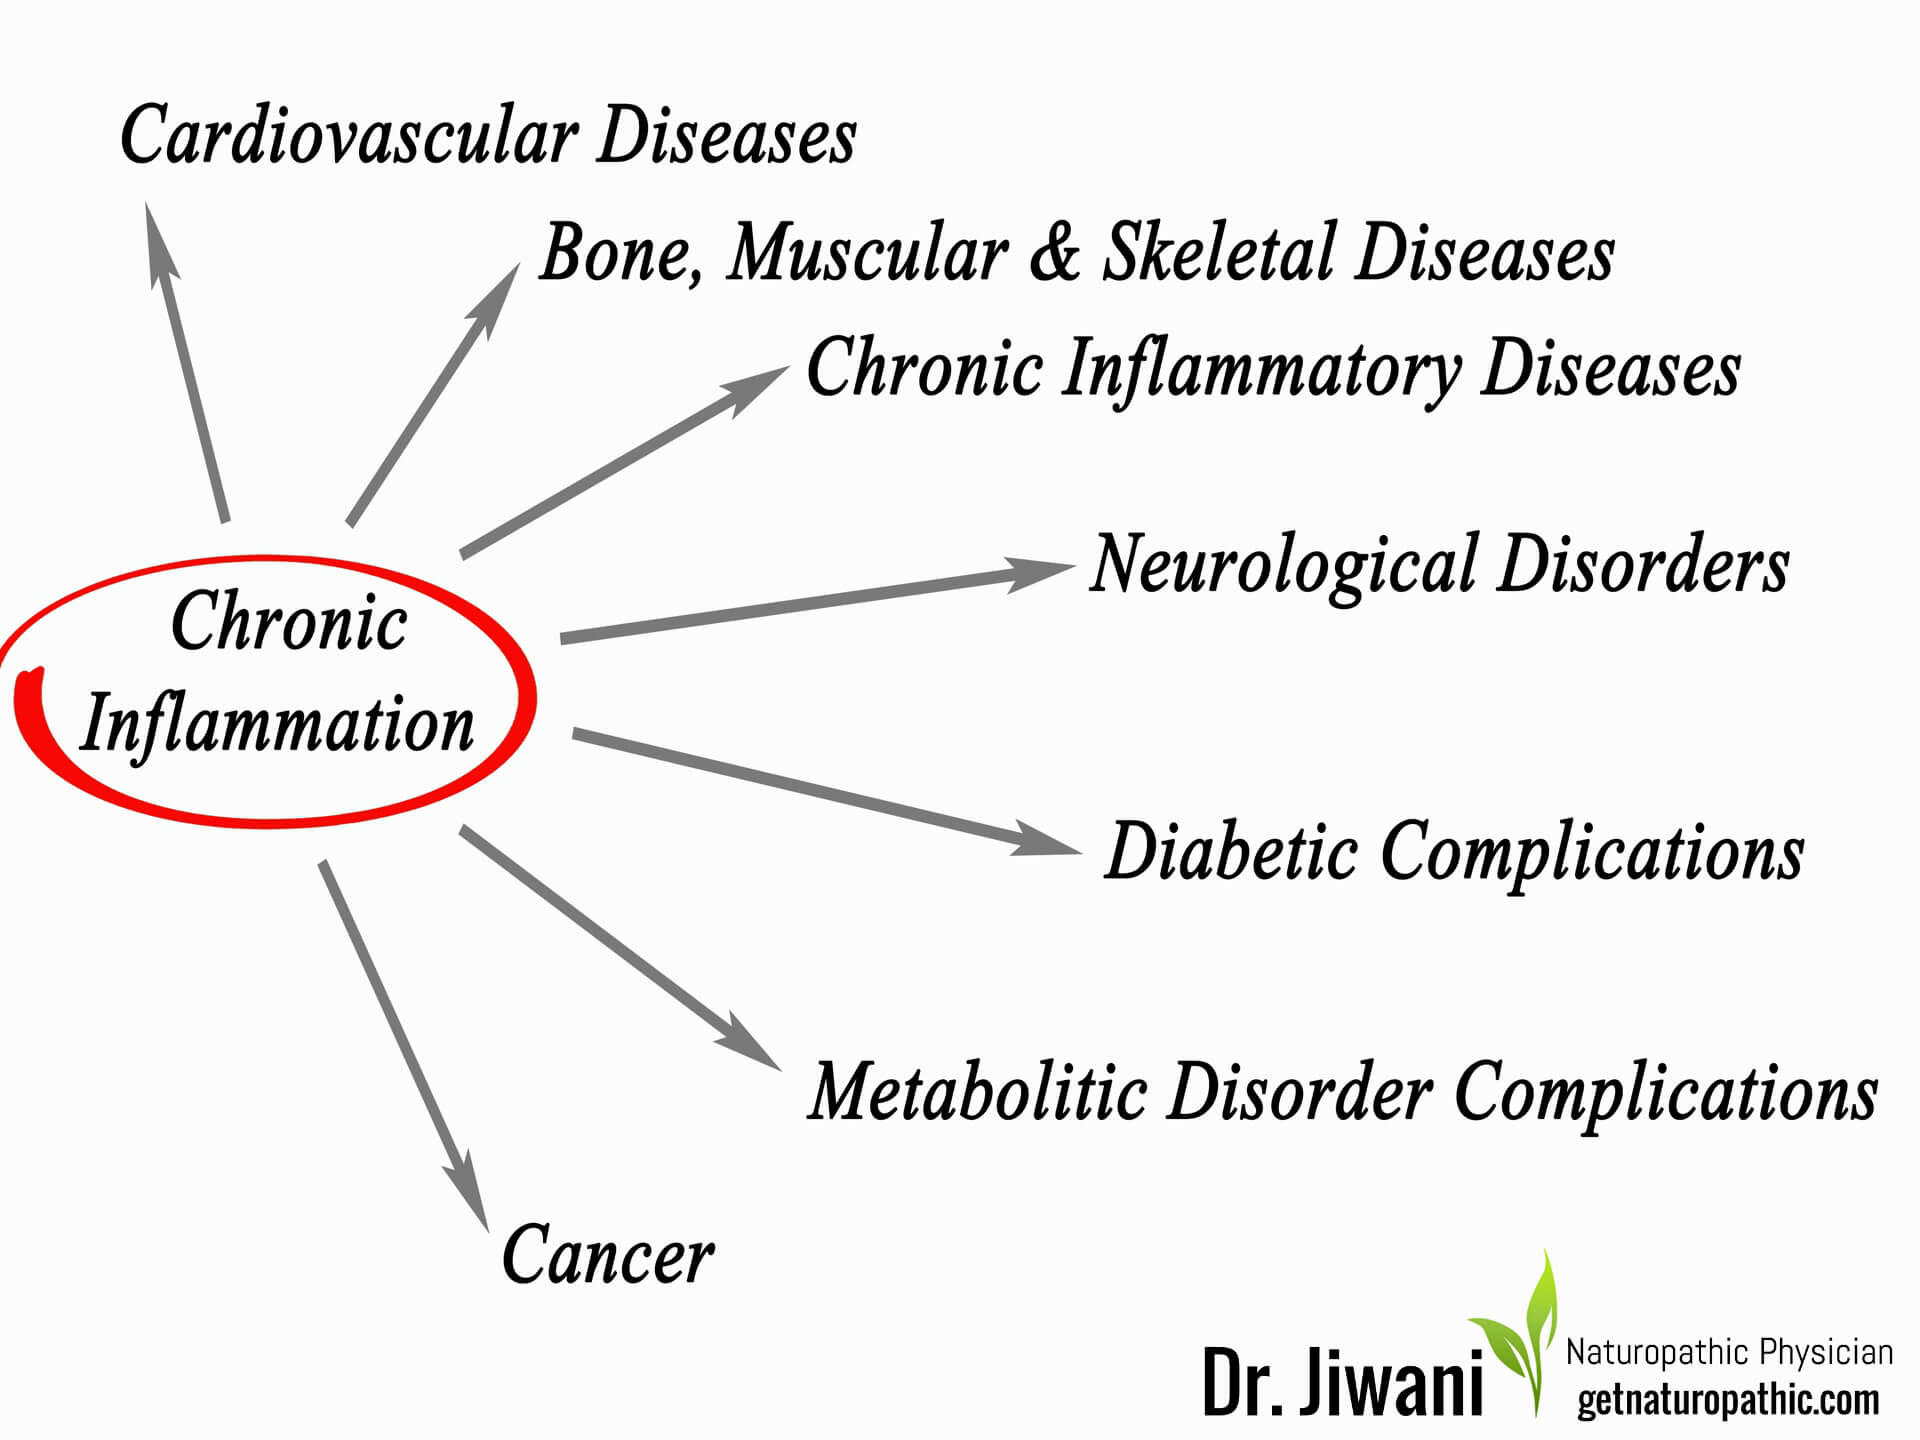 Dr. Jiwani Keto Diet Health Benefits: Ketosis for Optimal Health & Fat Burning | Dr. Jiwani's Naturopathic Nuggets Blog